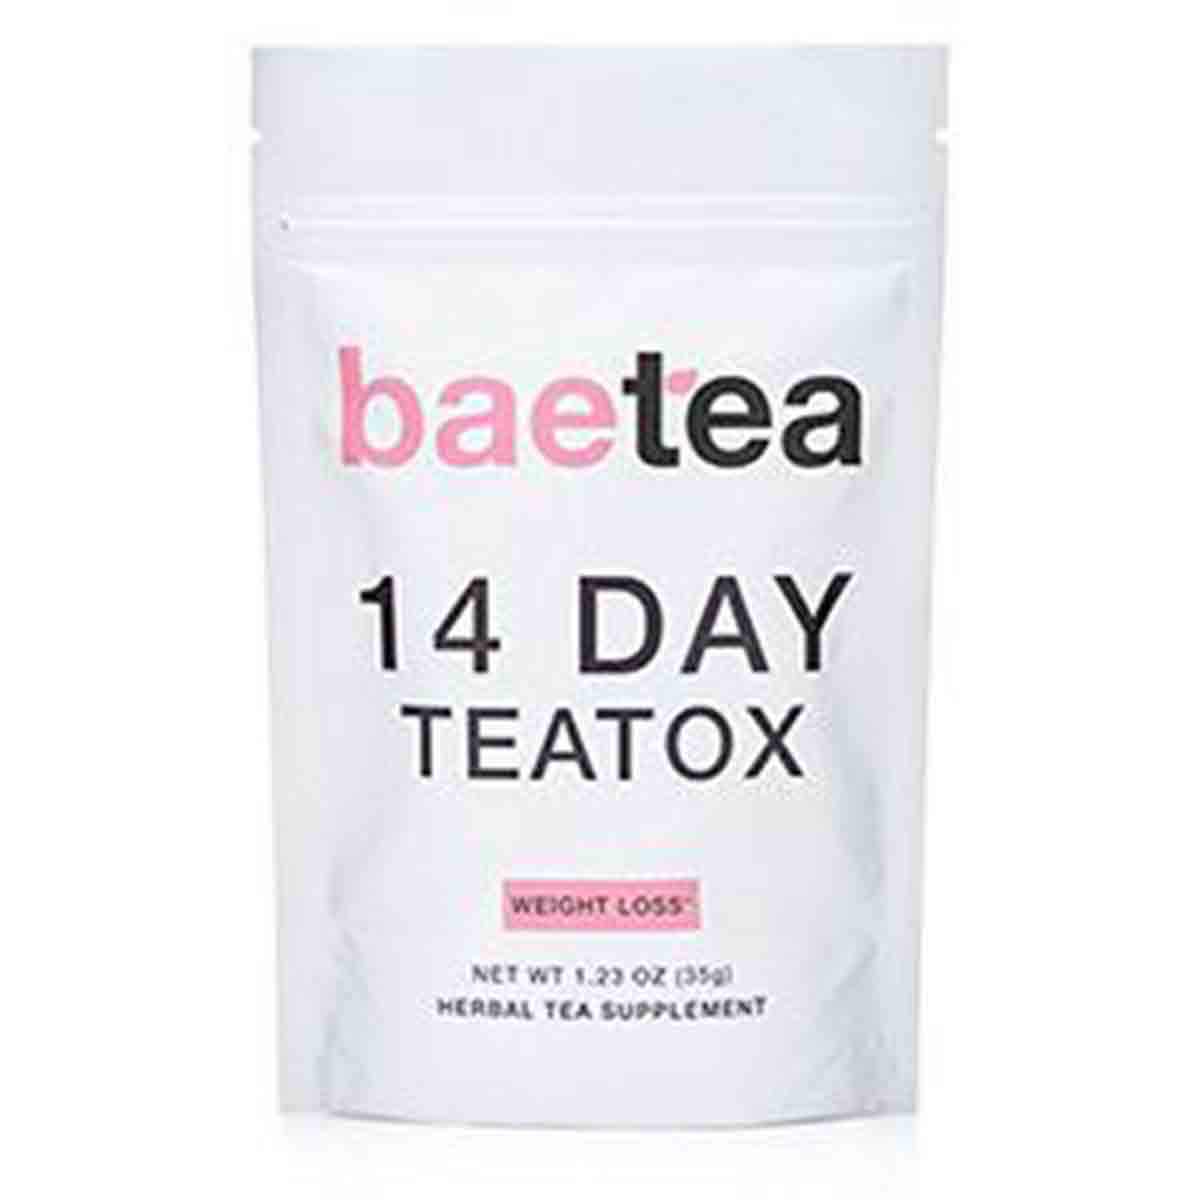 Baetea Weight Loss Tea